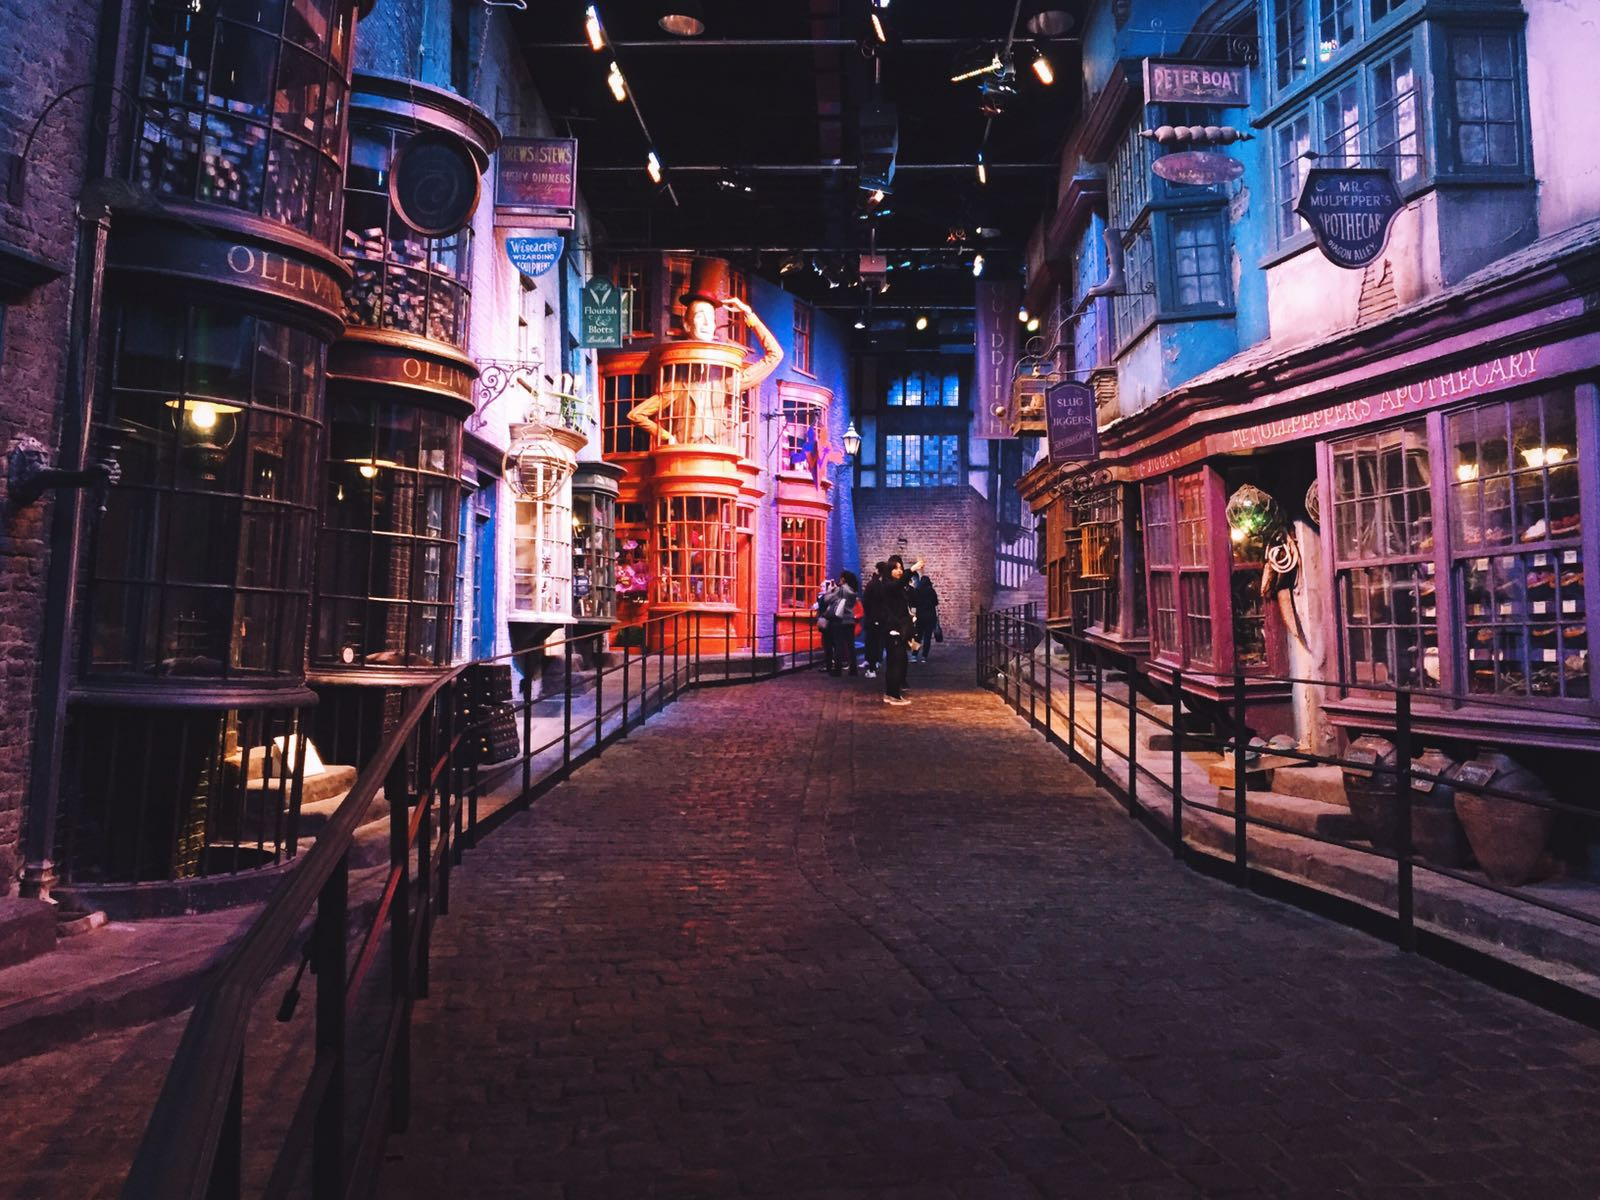 Diagon Alley Winkelgasse Harry Potter Warner Brothers Studio Tour London England Leonie